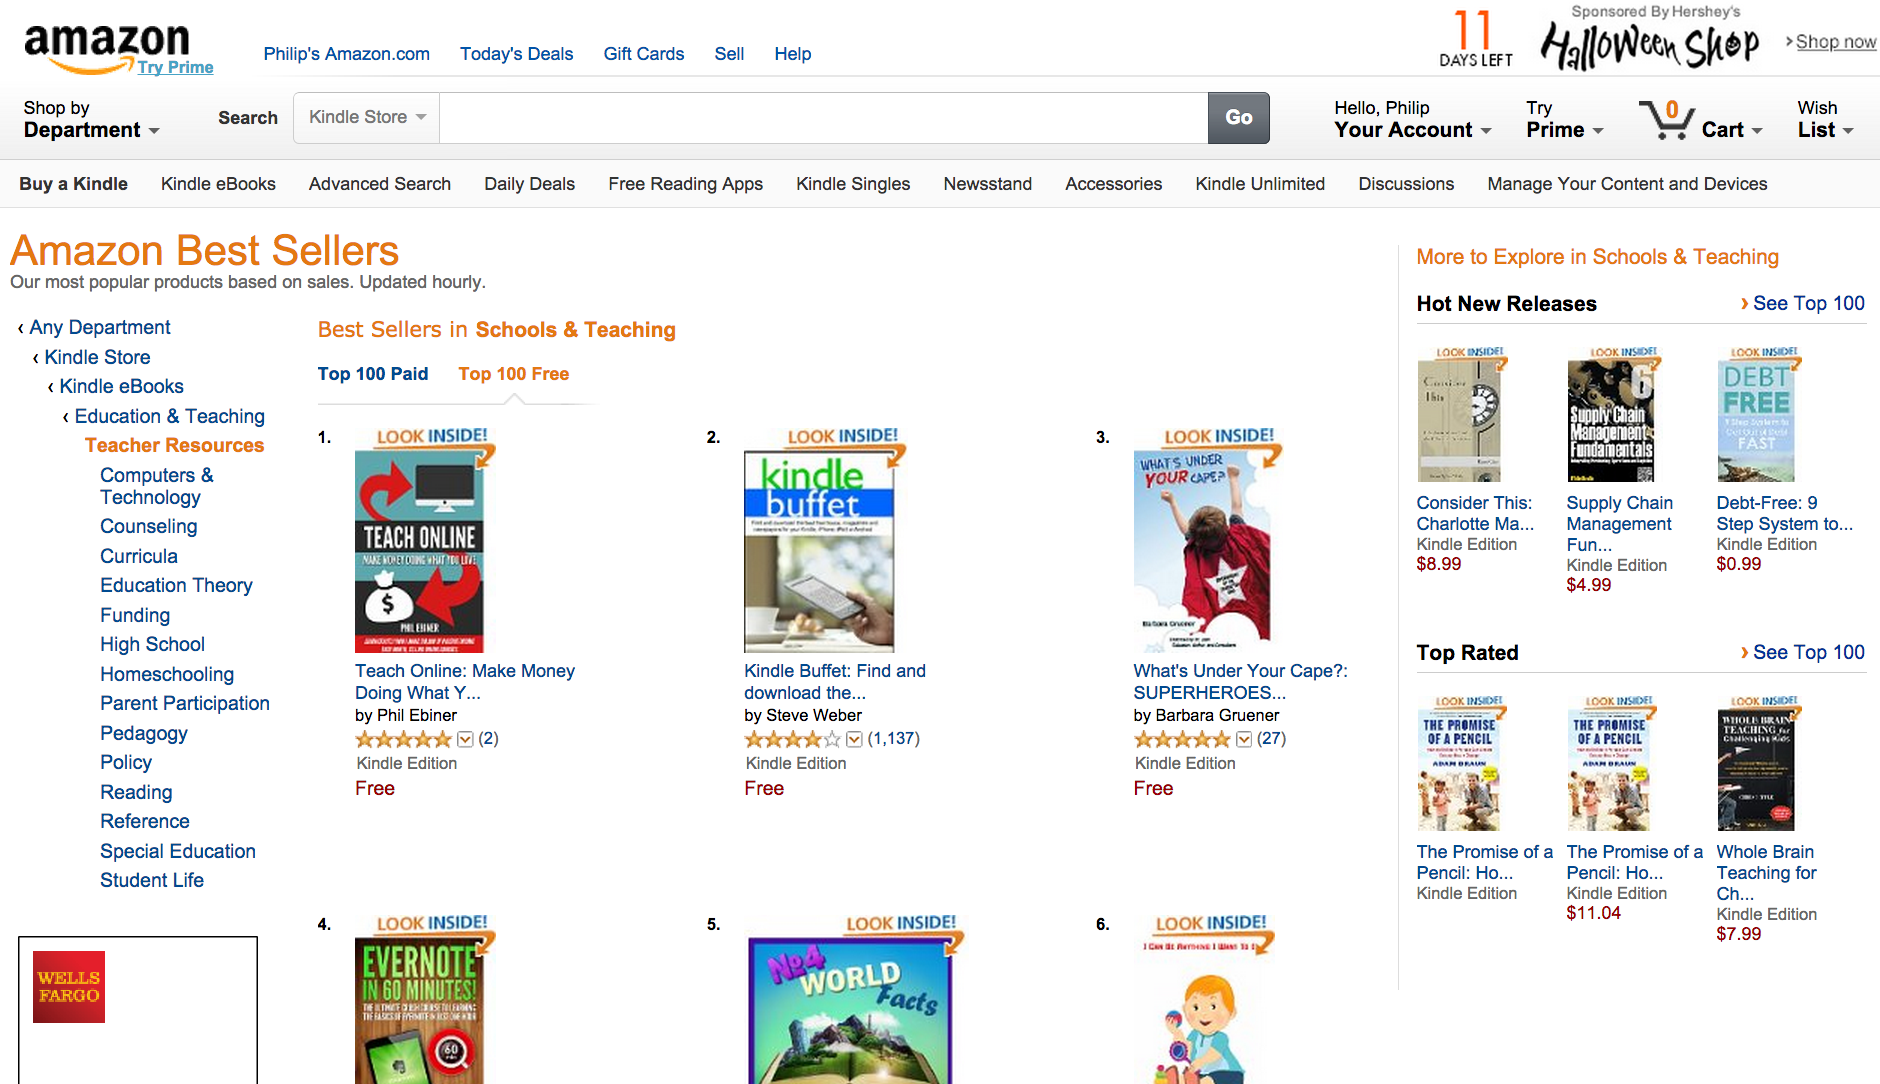 The Ultimate Guide to Being #1 on the Amazon Best Sellers List